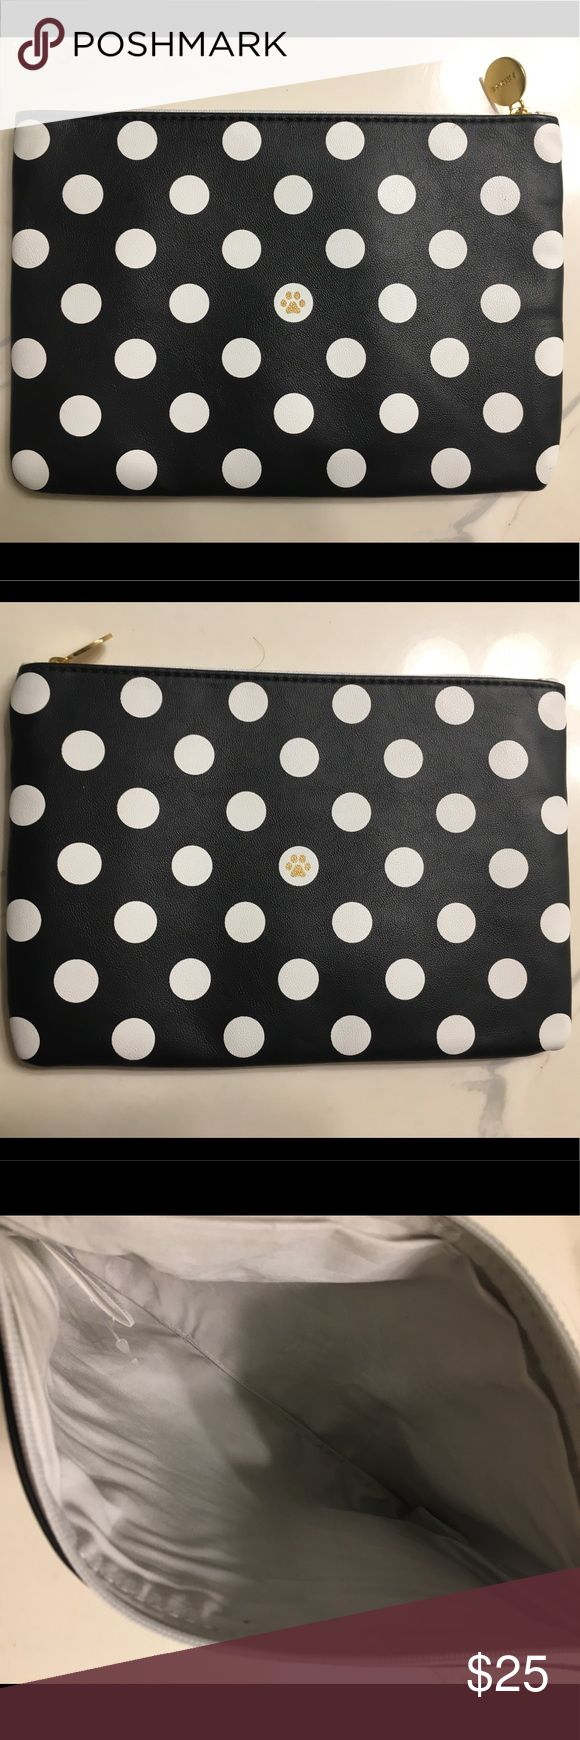 "Polka Dot Clutch or Make Up Bag Adorable polka dot make up bag or clutch. NWOT. In perfect condition, never used. Both sides are identical. White interior. 6""Wx9""H Function & Fringe Bags Cosmetic Bags & Cases"